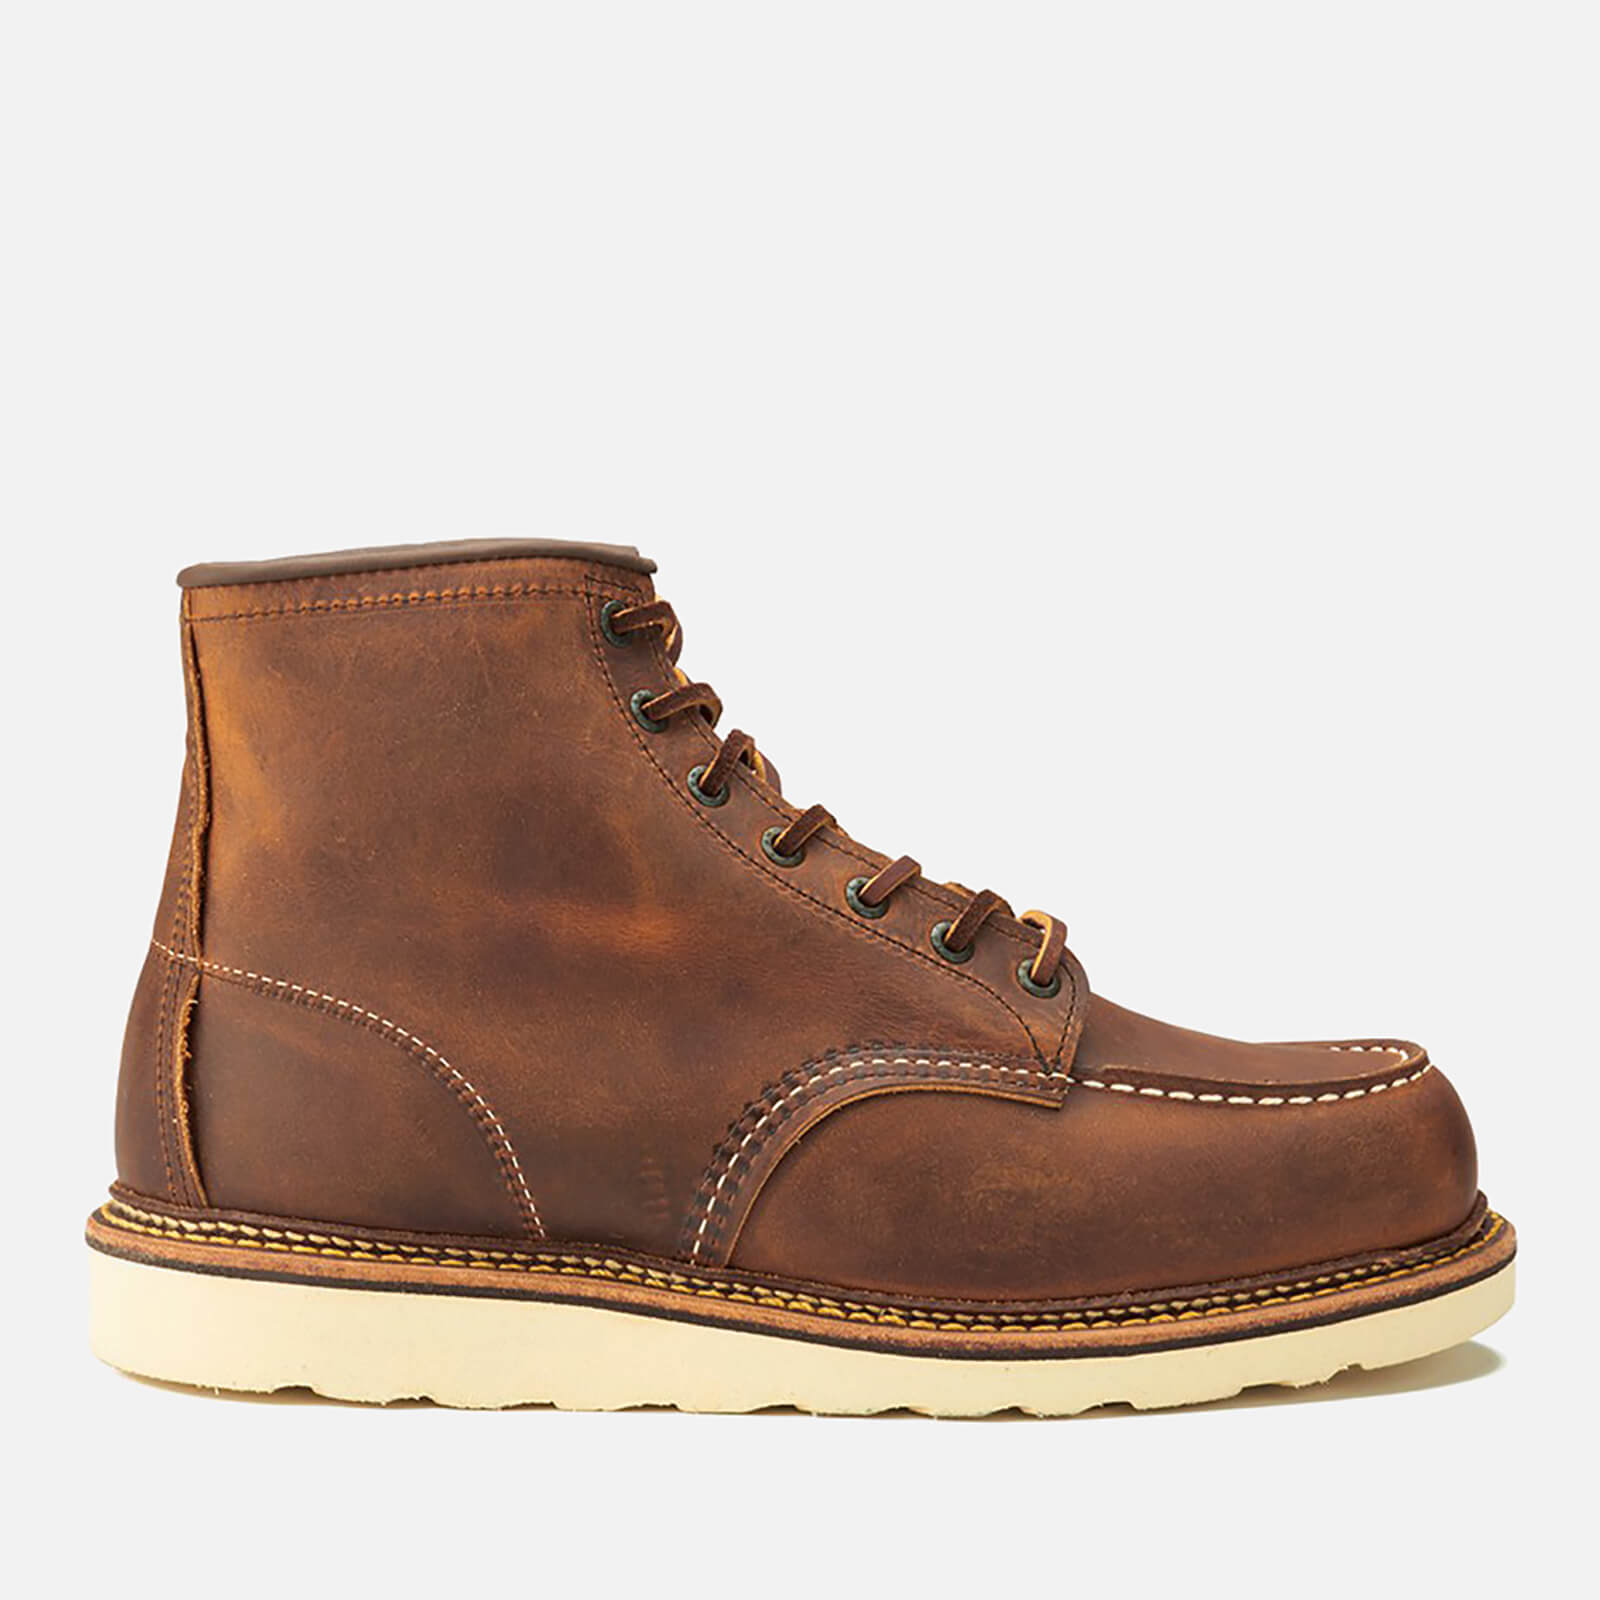 9725fc11e54 Red Wing Shoes   Heritage Men's Boots   Online at Coggles